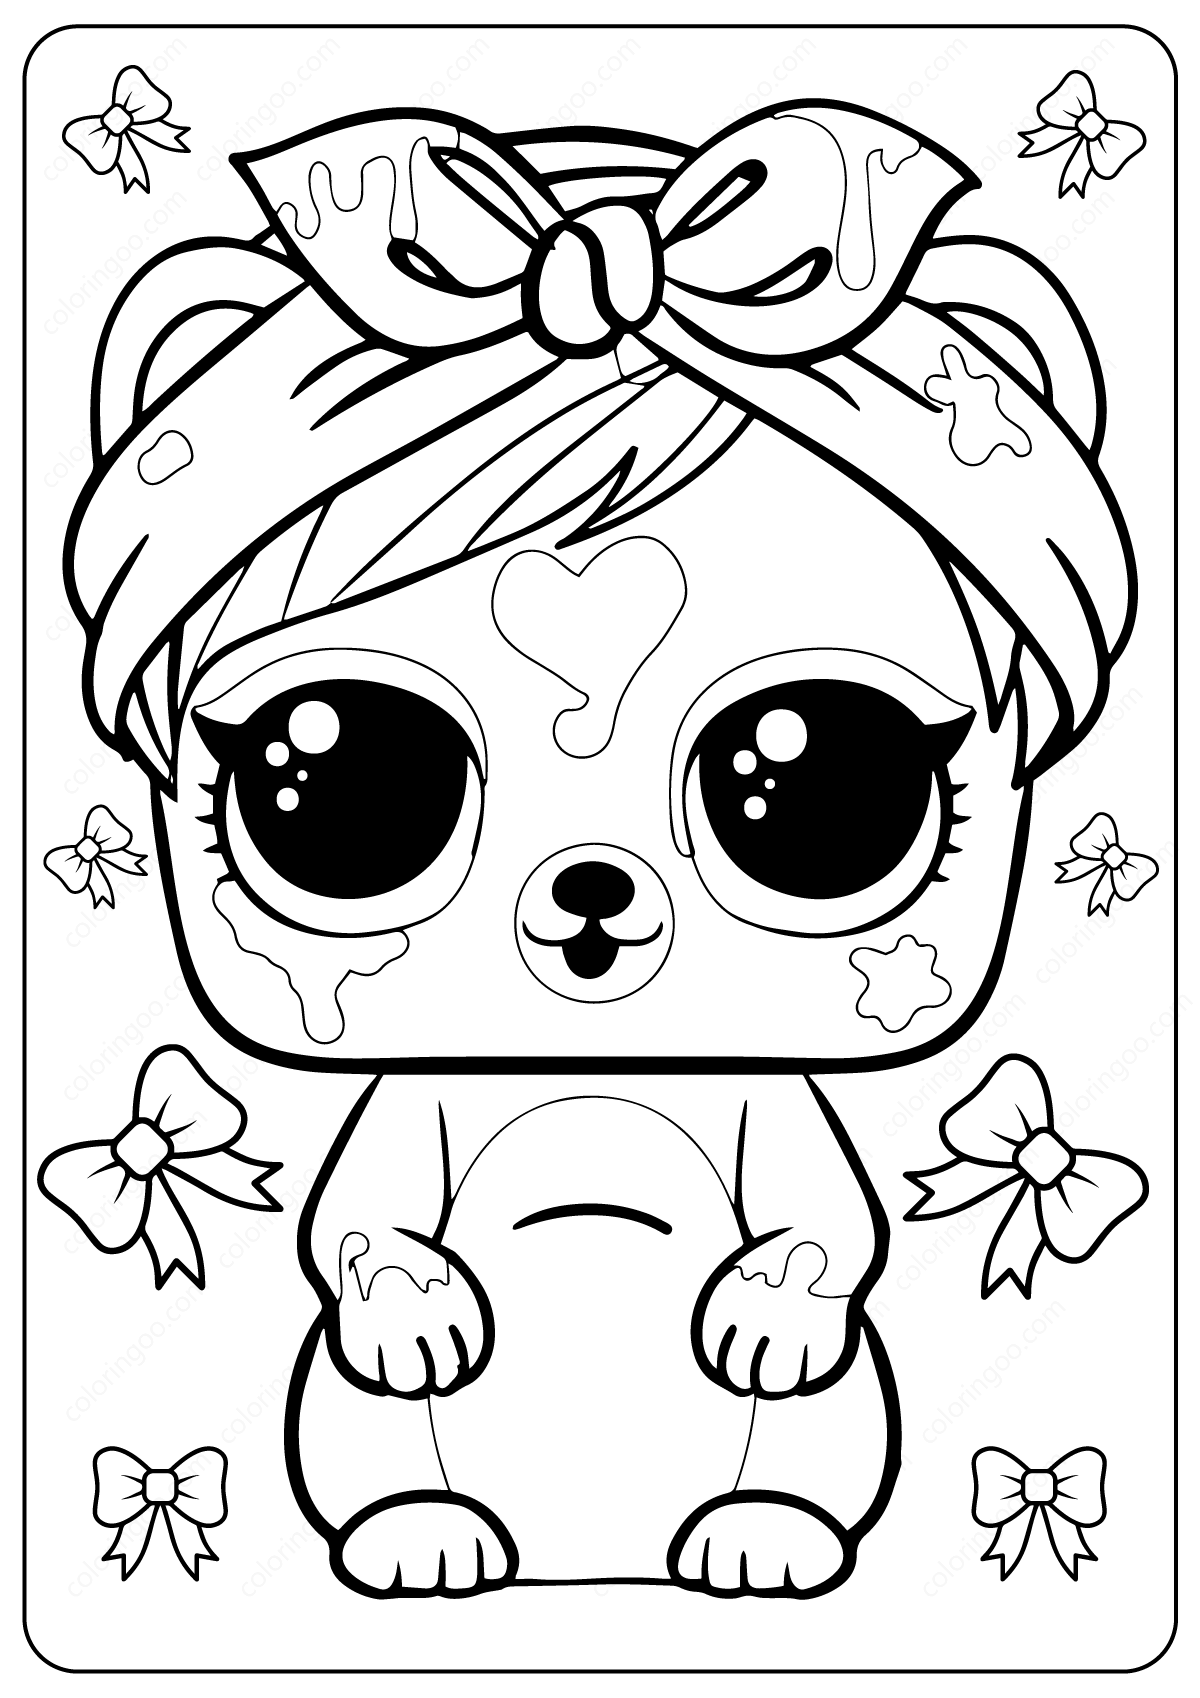 Free Printable LOL Surprise Coloring Pages